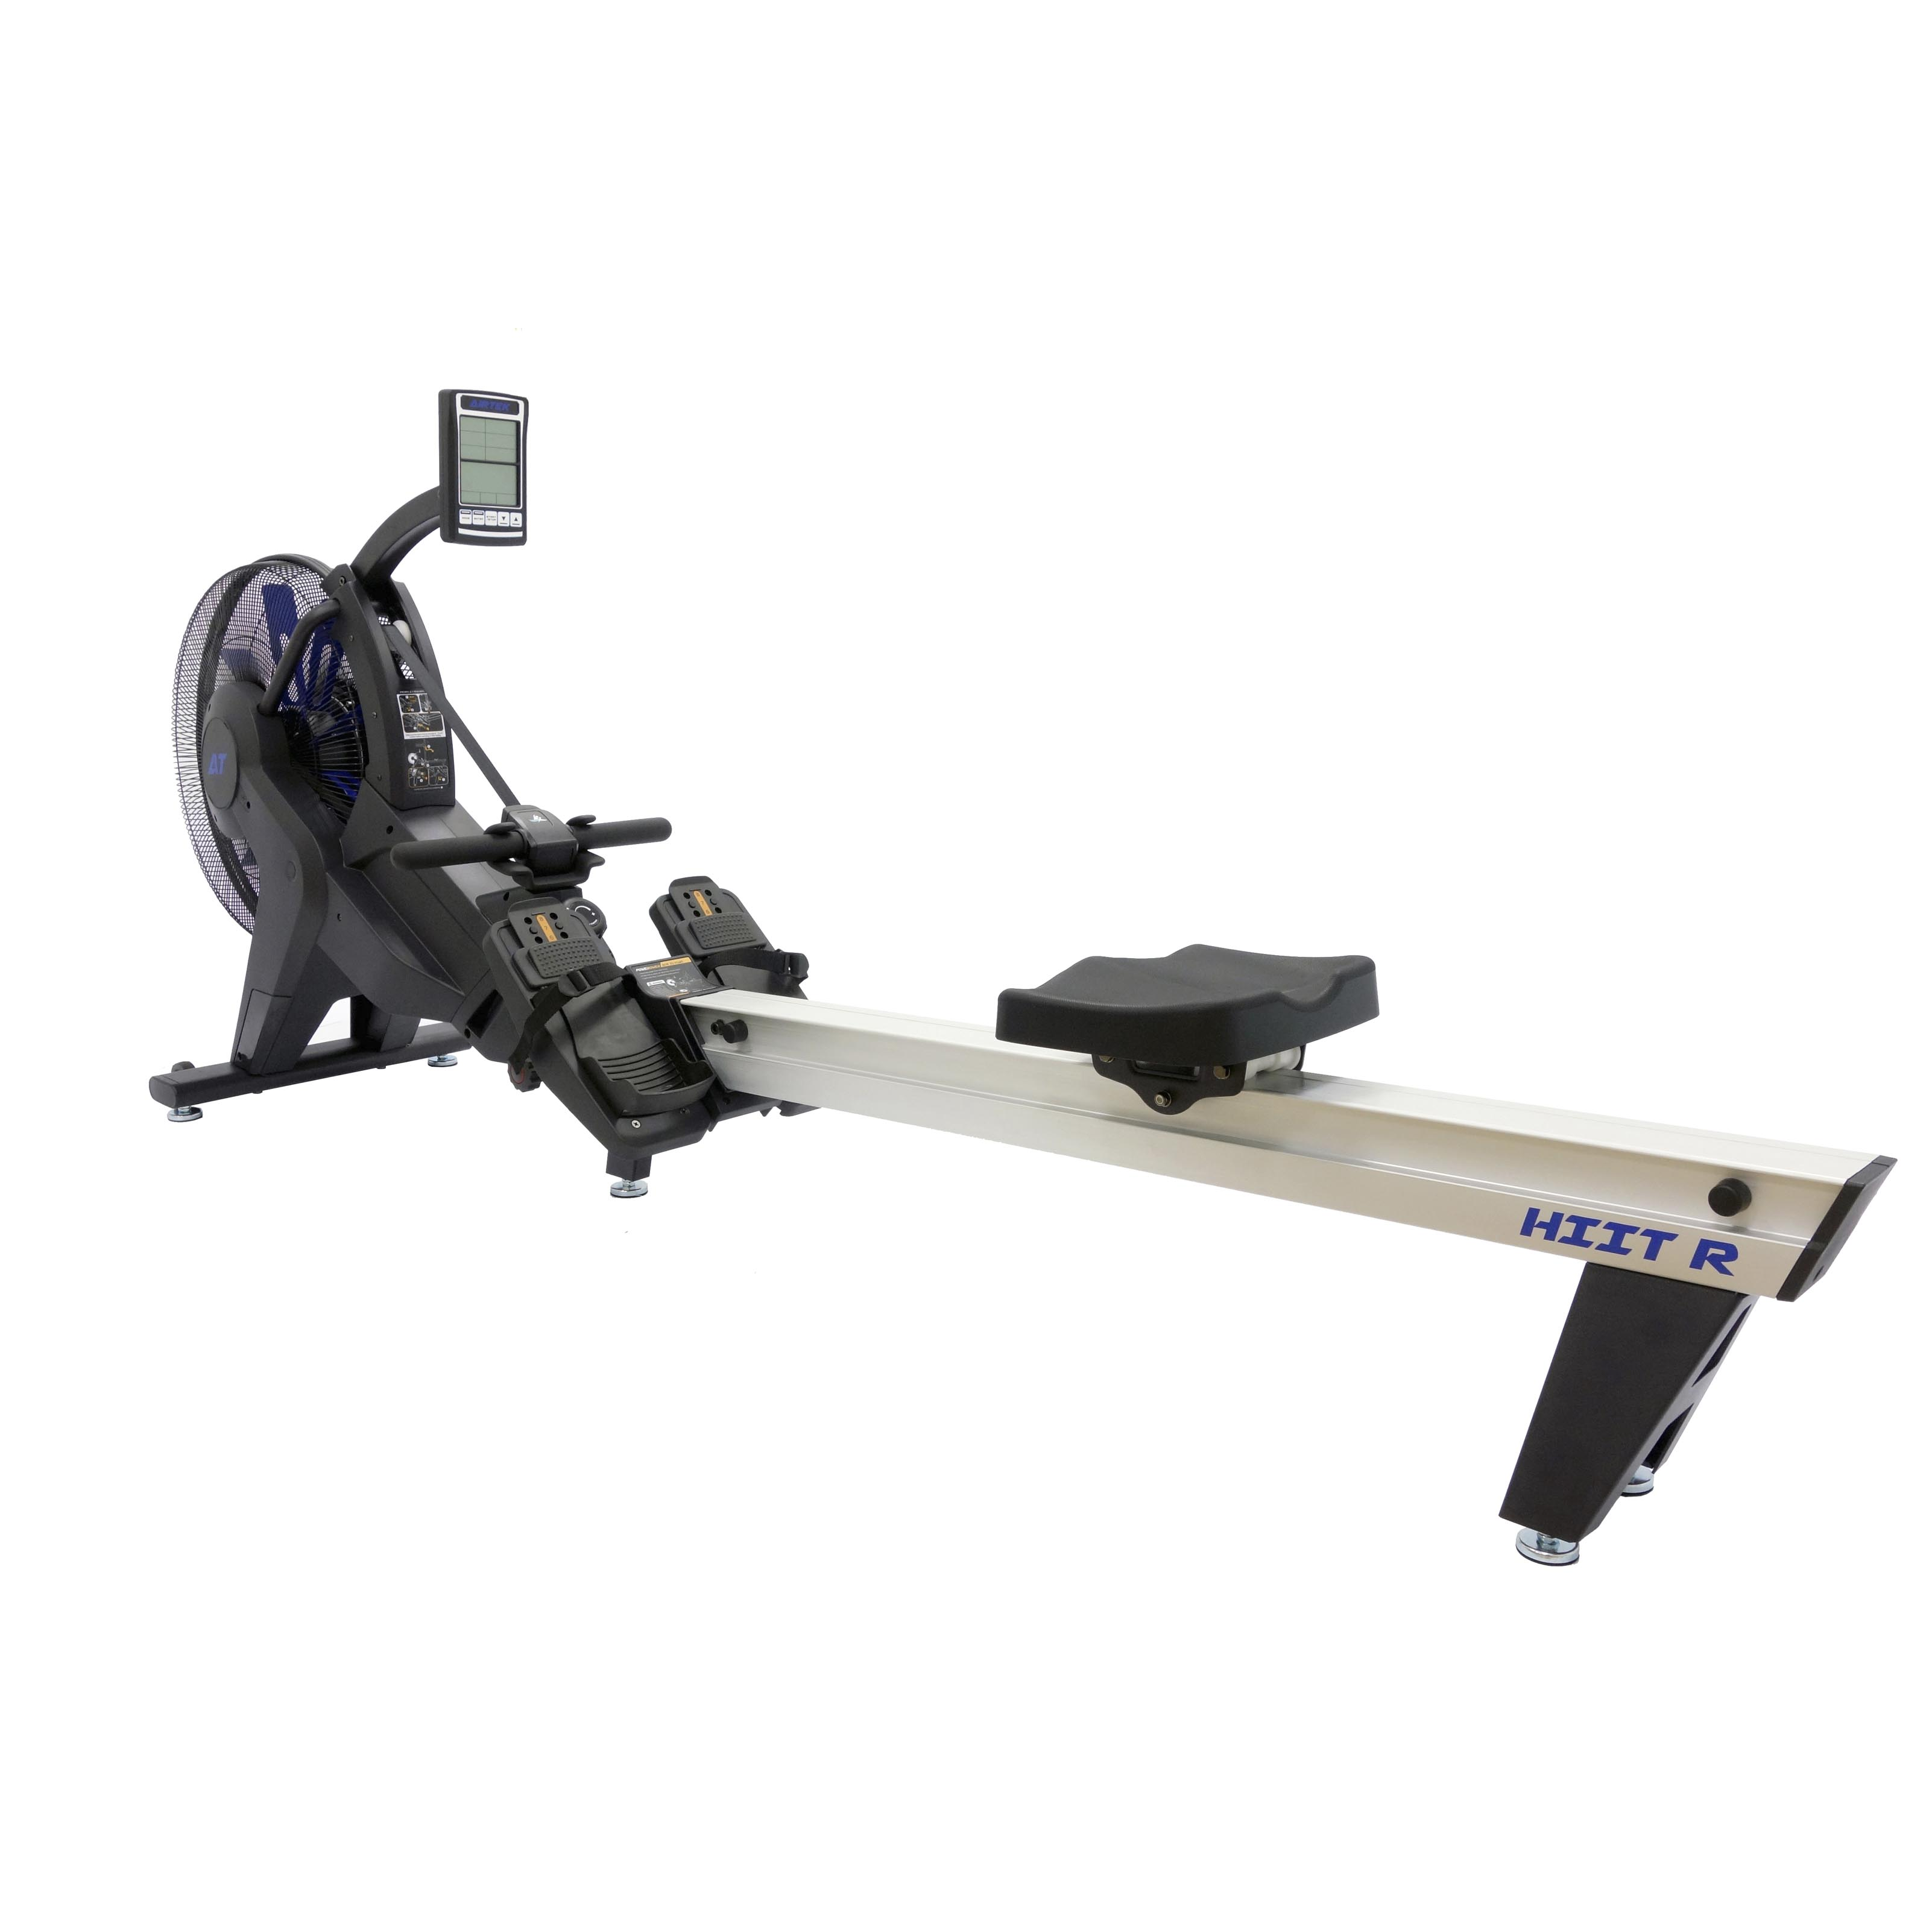 AirTEK Fitness HIIT Air and Magnetic Rower Main